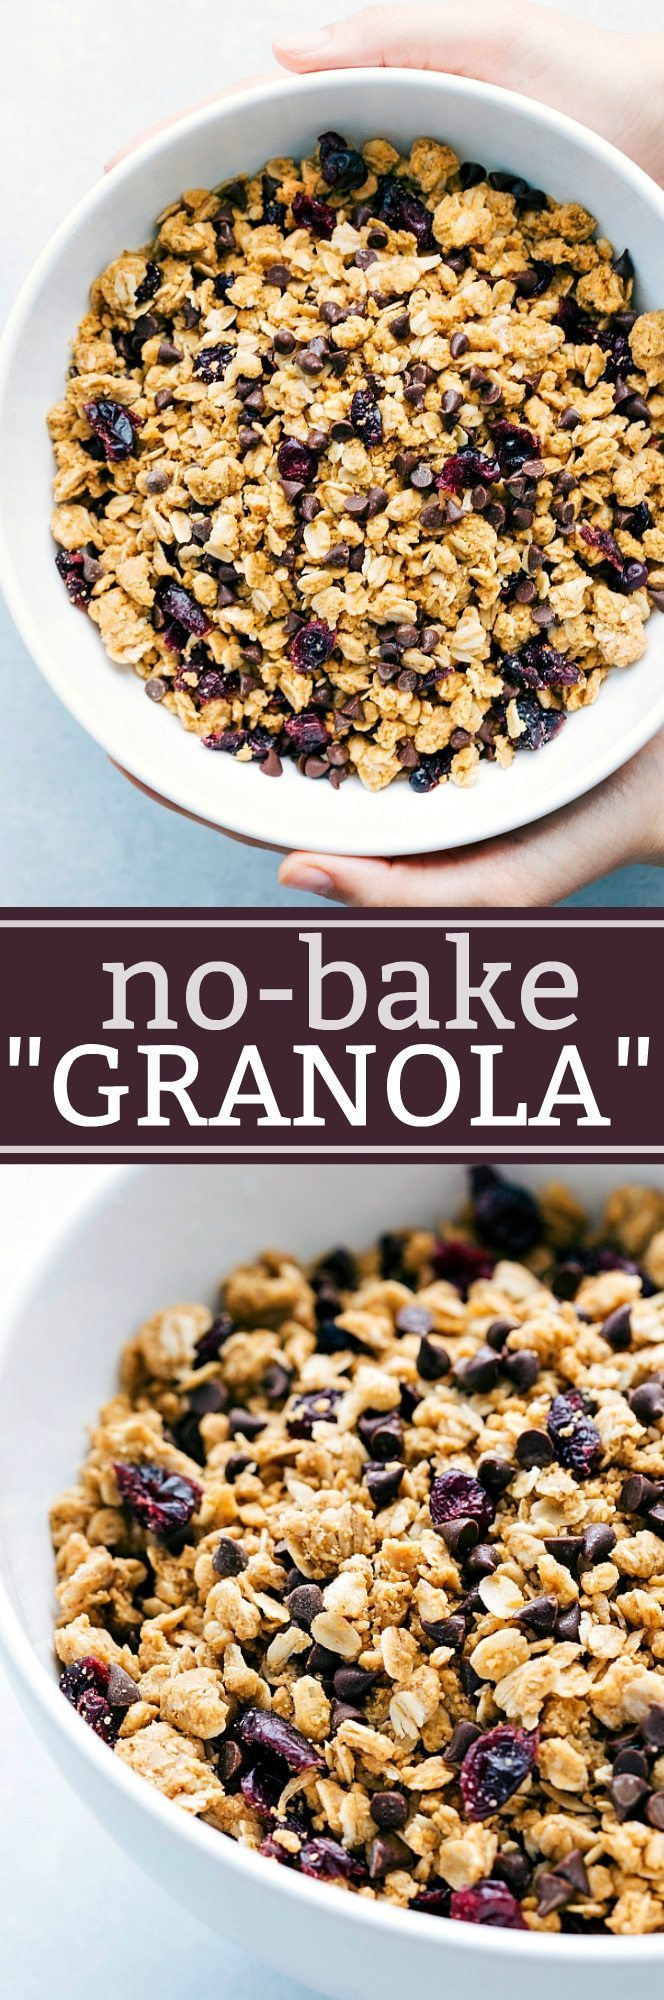 ... granola this granola makes a great breakfast or snack it s healthy and